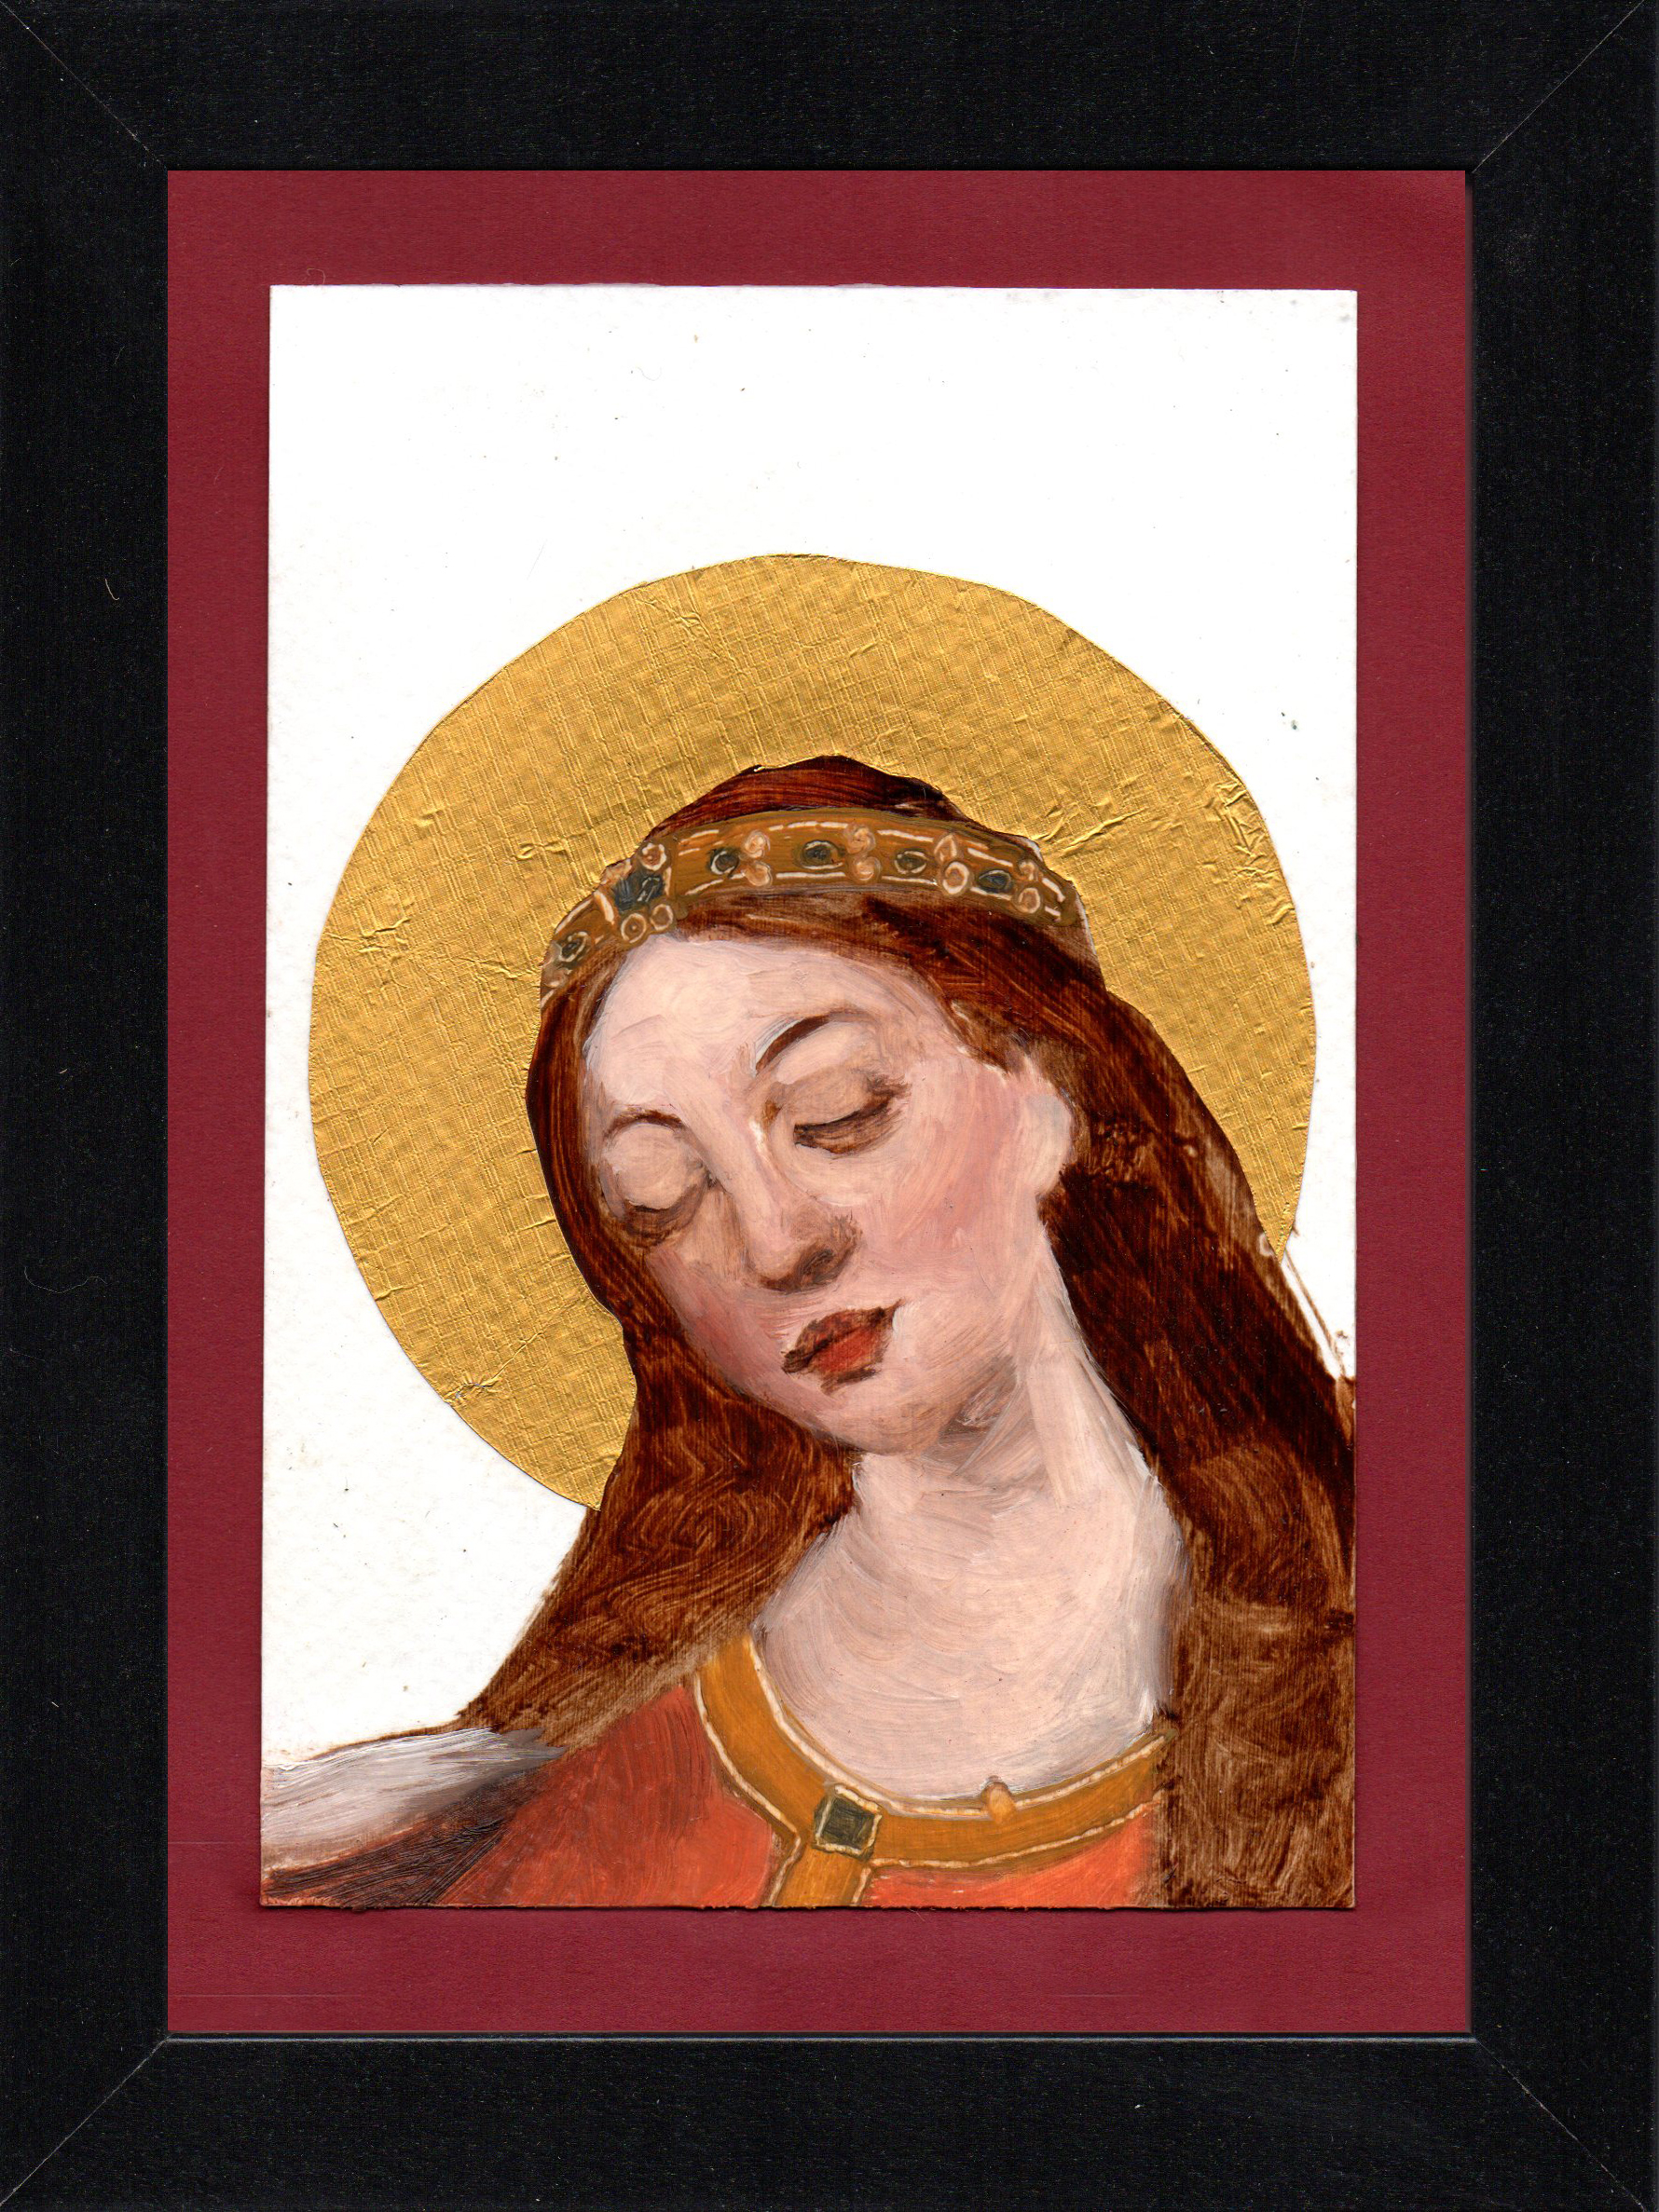 "Postcard Saint 9, oil & gold foil on paper 10.5 x 15 cm (4"" x 6""), 2016"